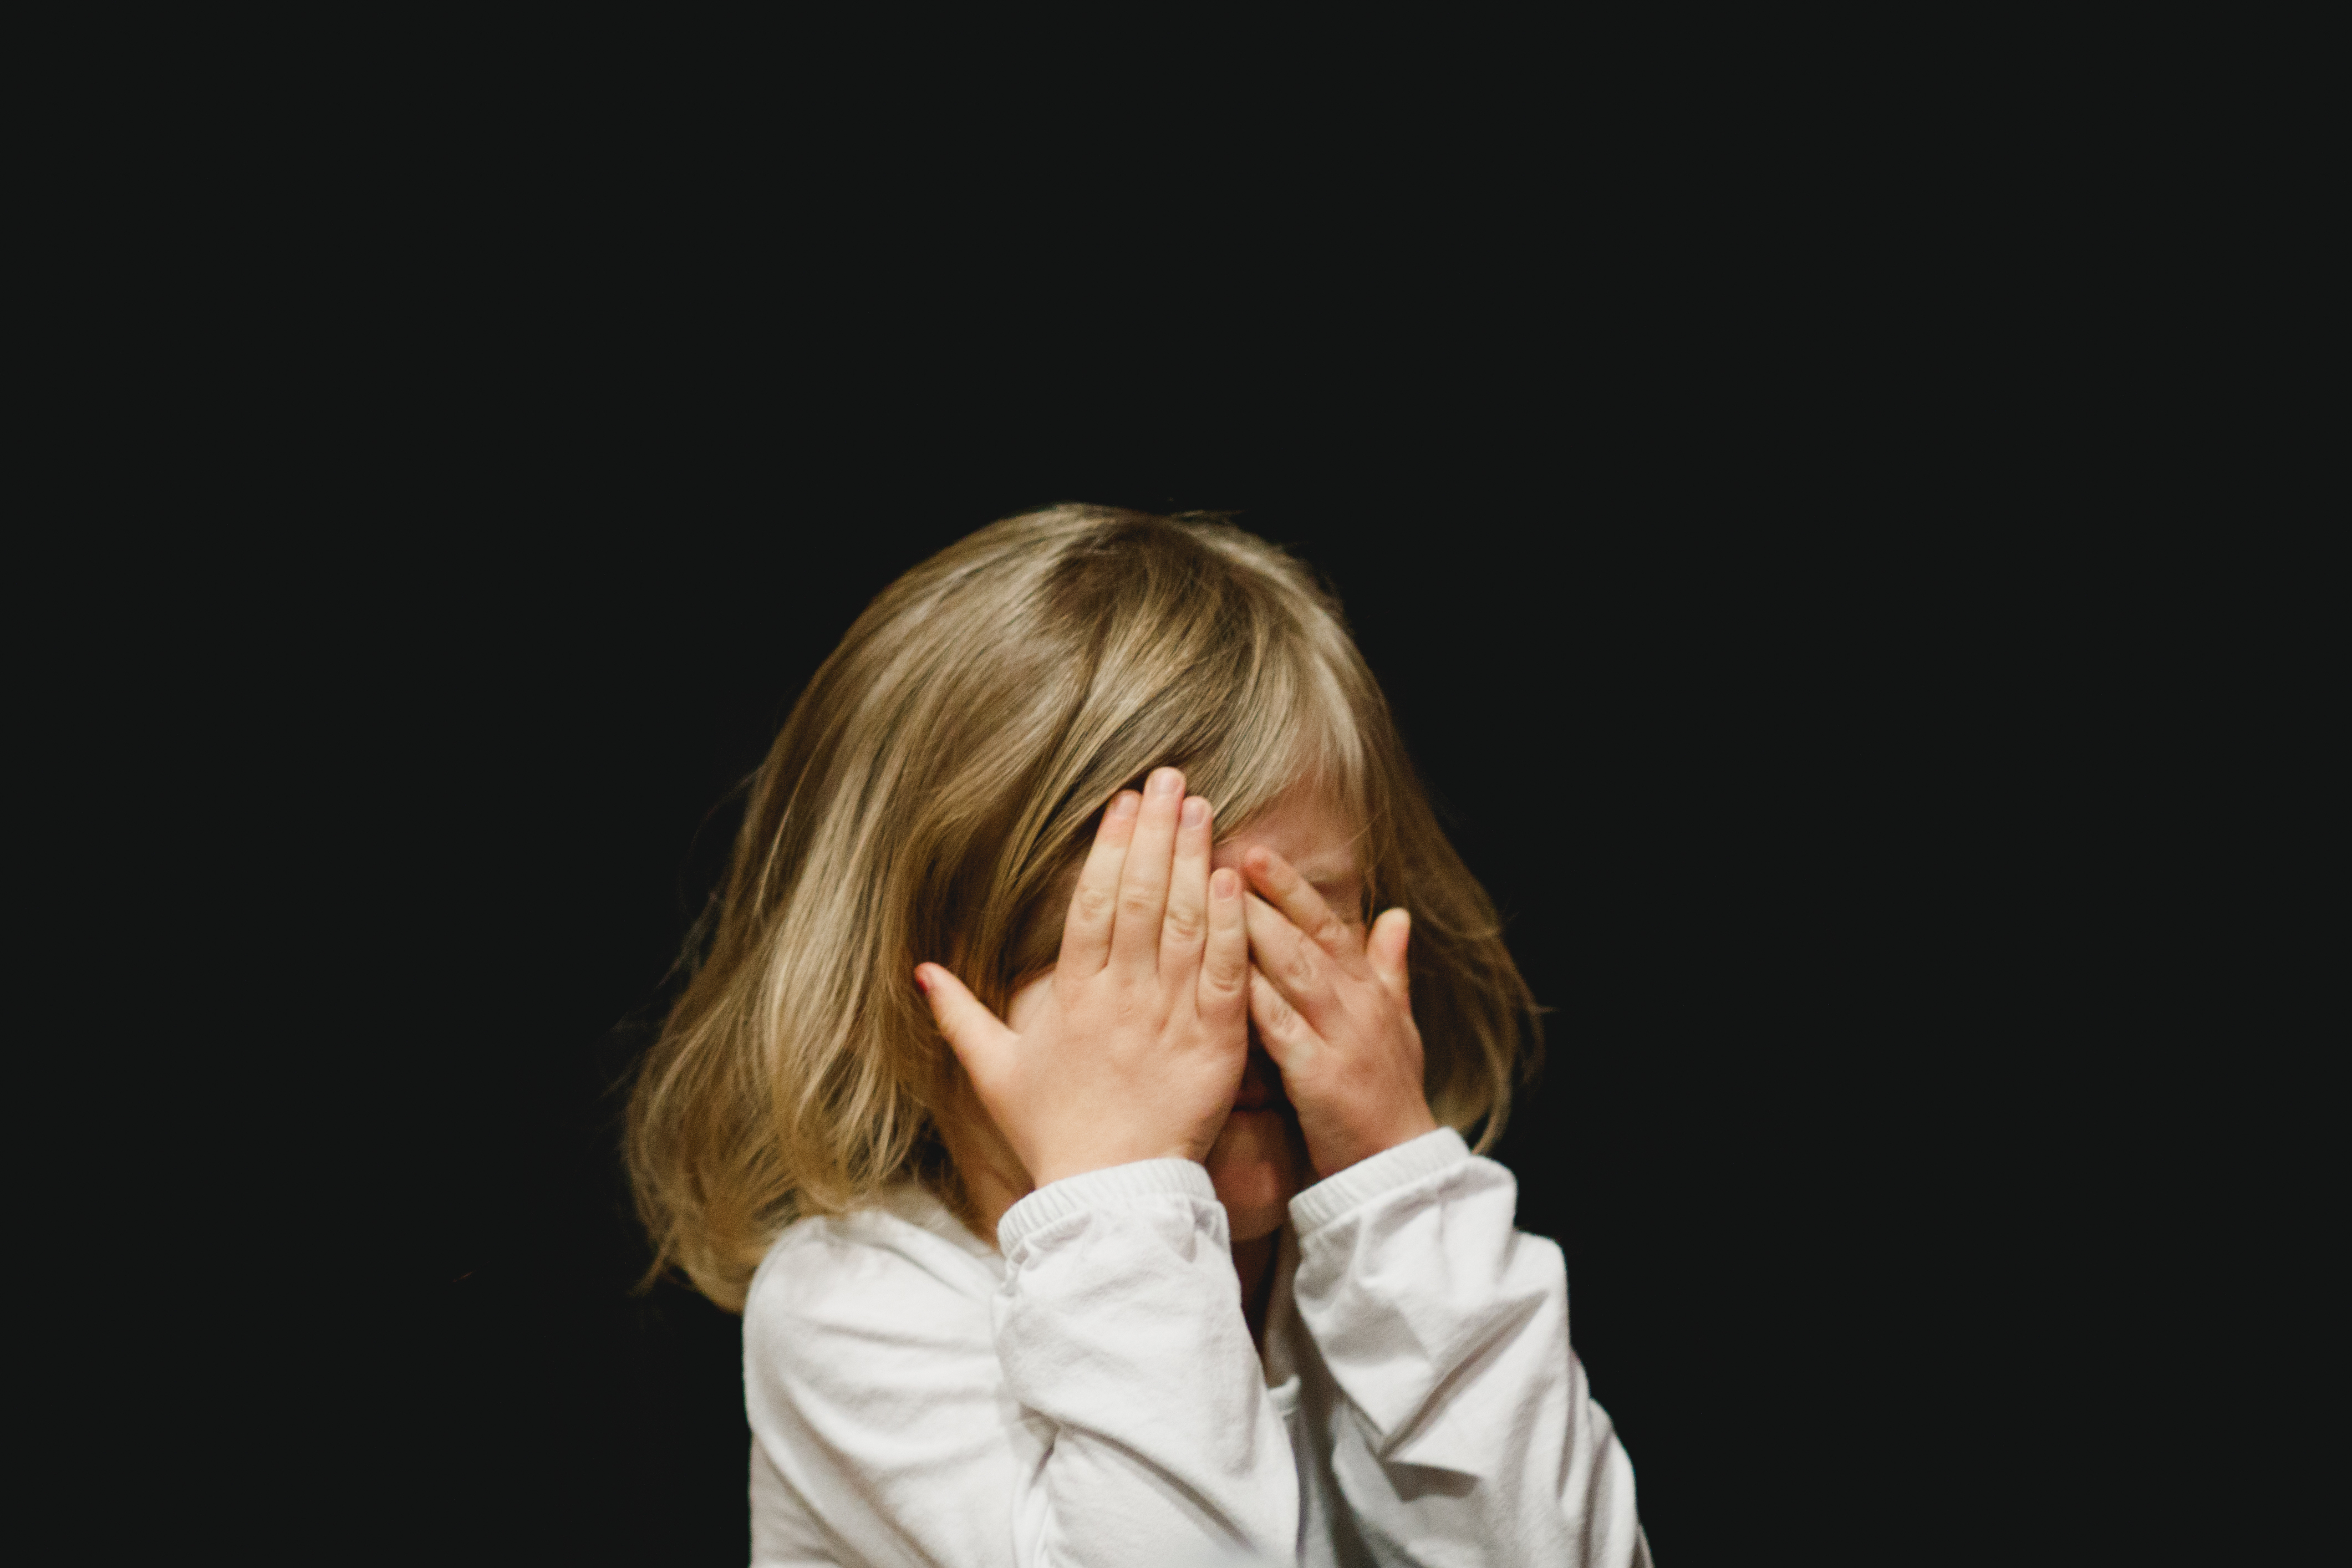 shy little girl covering her face with her hands